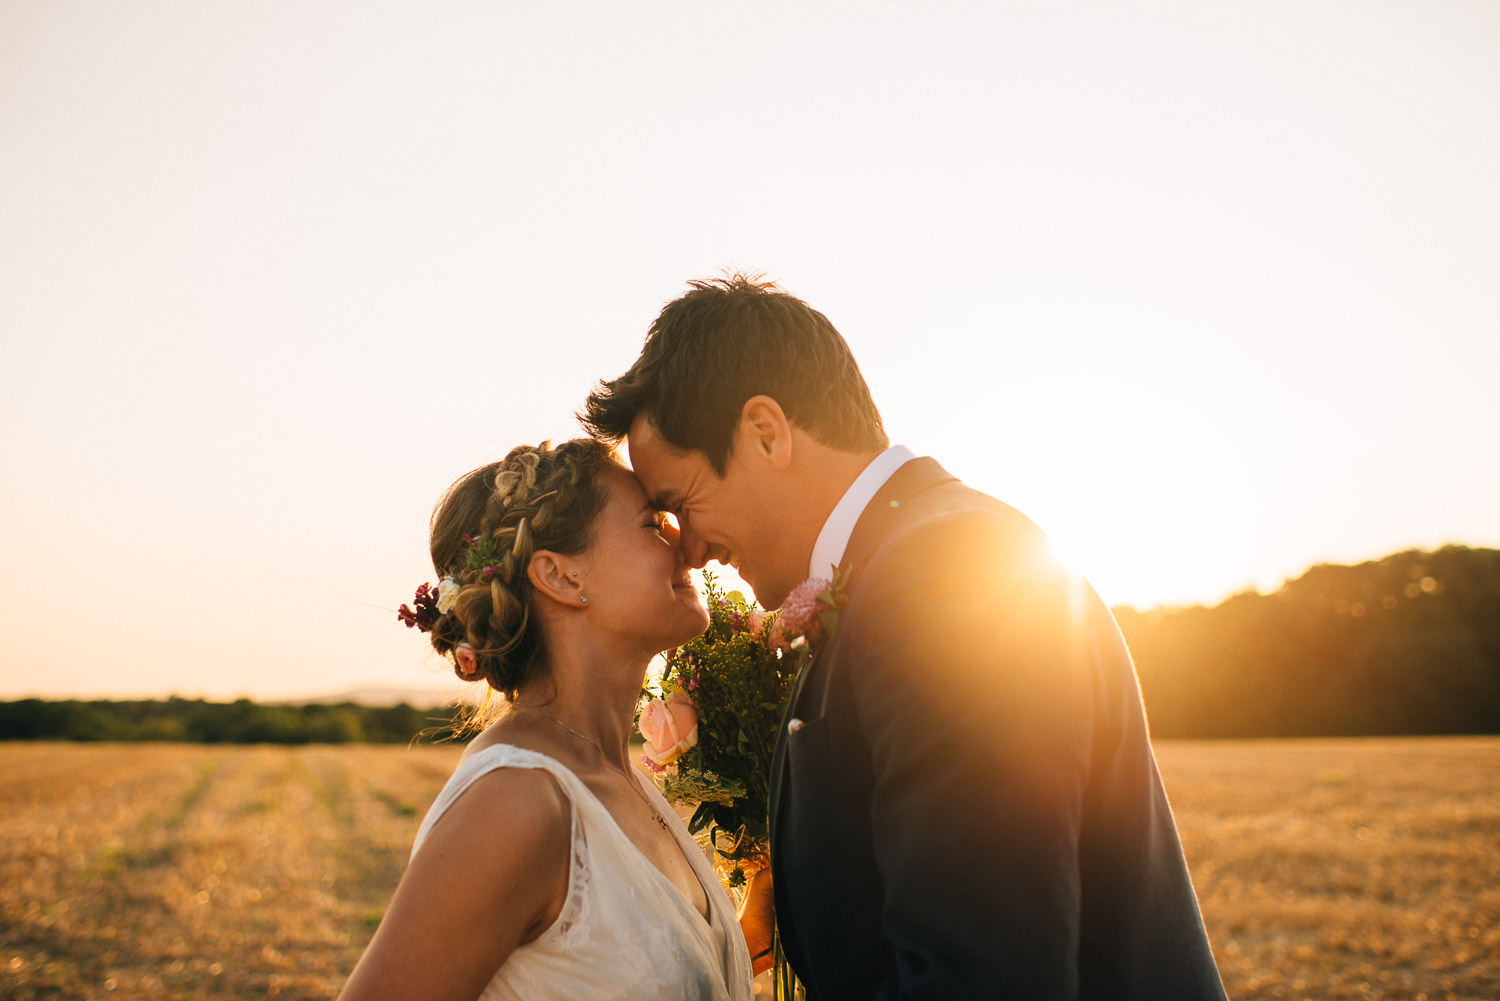 sunset couple with bride in charlie bread dress by creative and alternative london wedding photographer the shannons photography